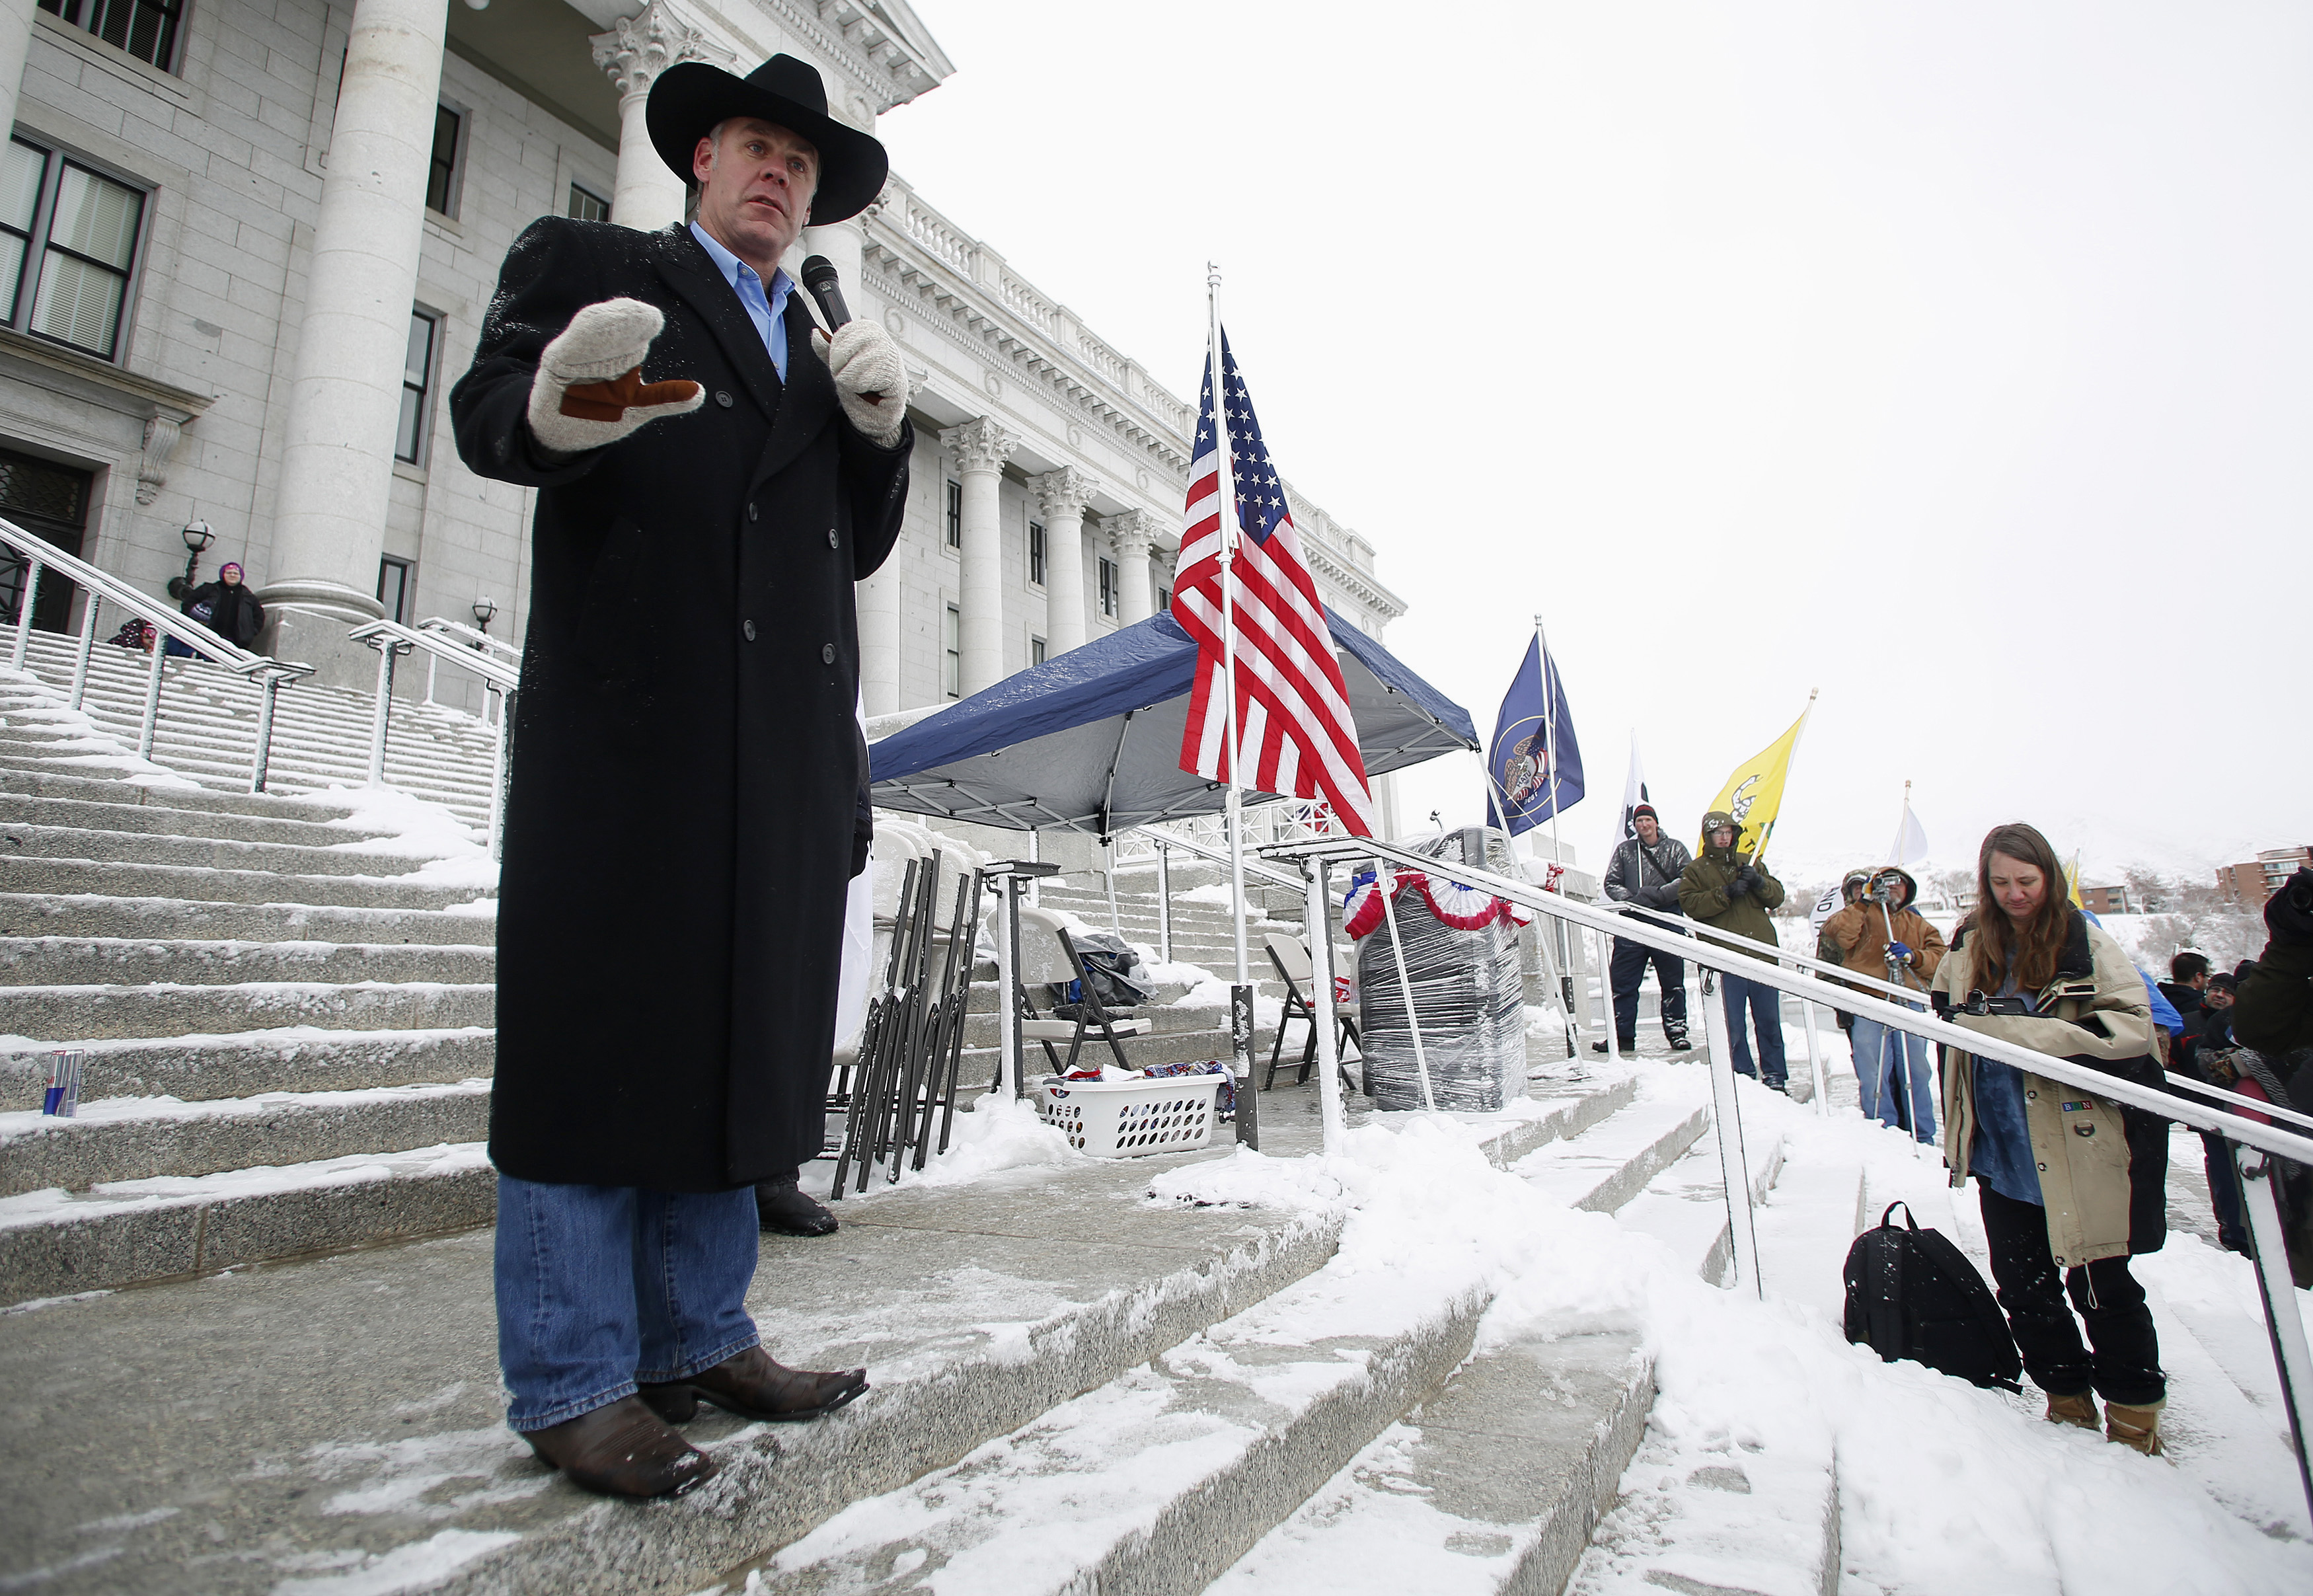 Montana state Senator Ryan Zinke addresses a pro-gun activist rally at the state Capitol in Salt Lake City, in 2013. Photo by Jim Urquhart/Reuters